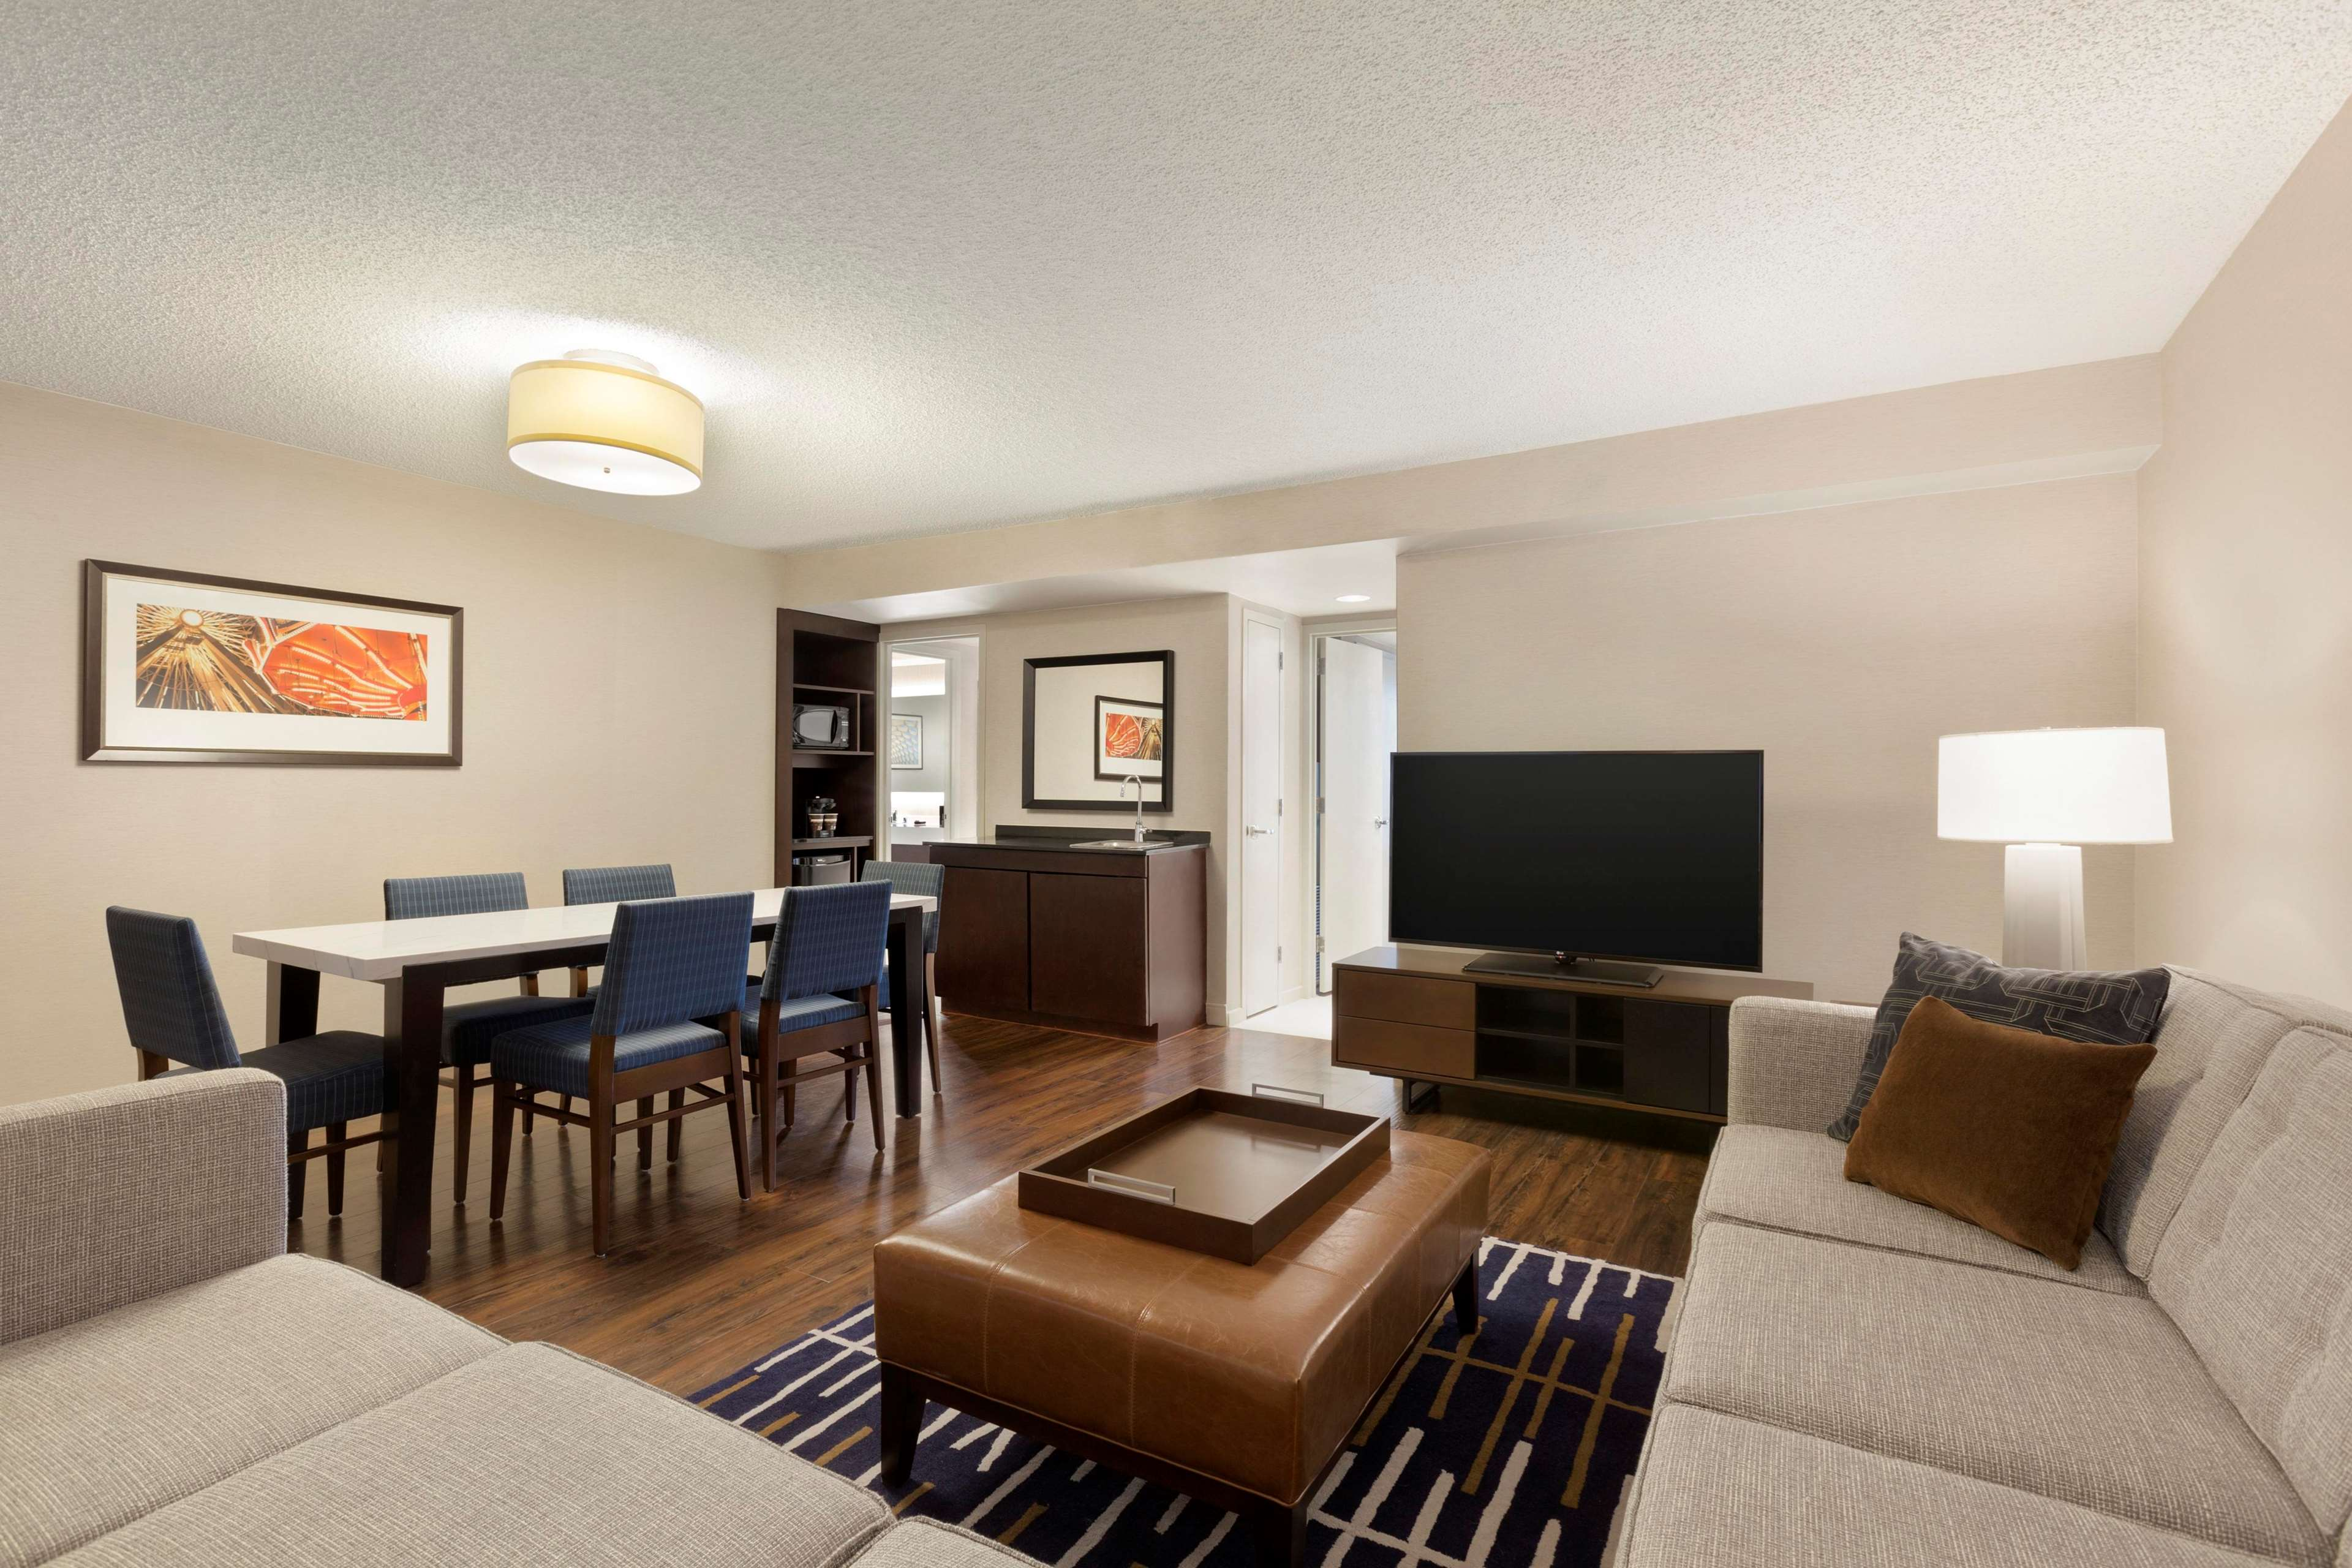 Embassy Suites by Hilton Chicago Lombard Oak Brook image 33